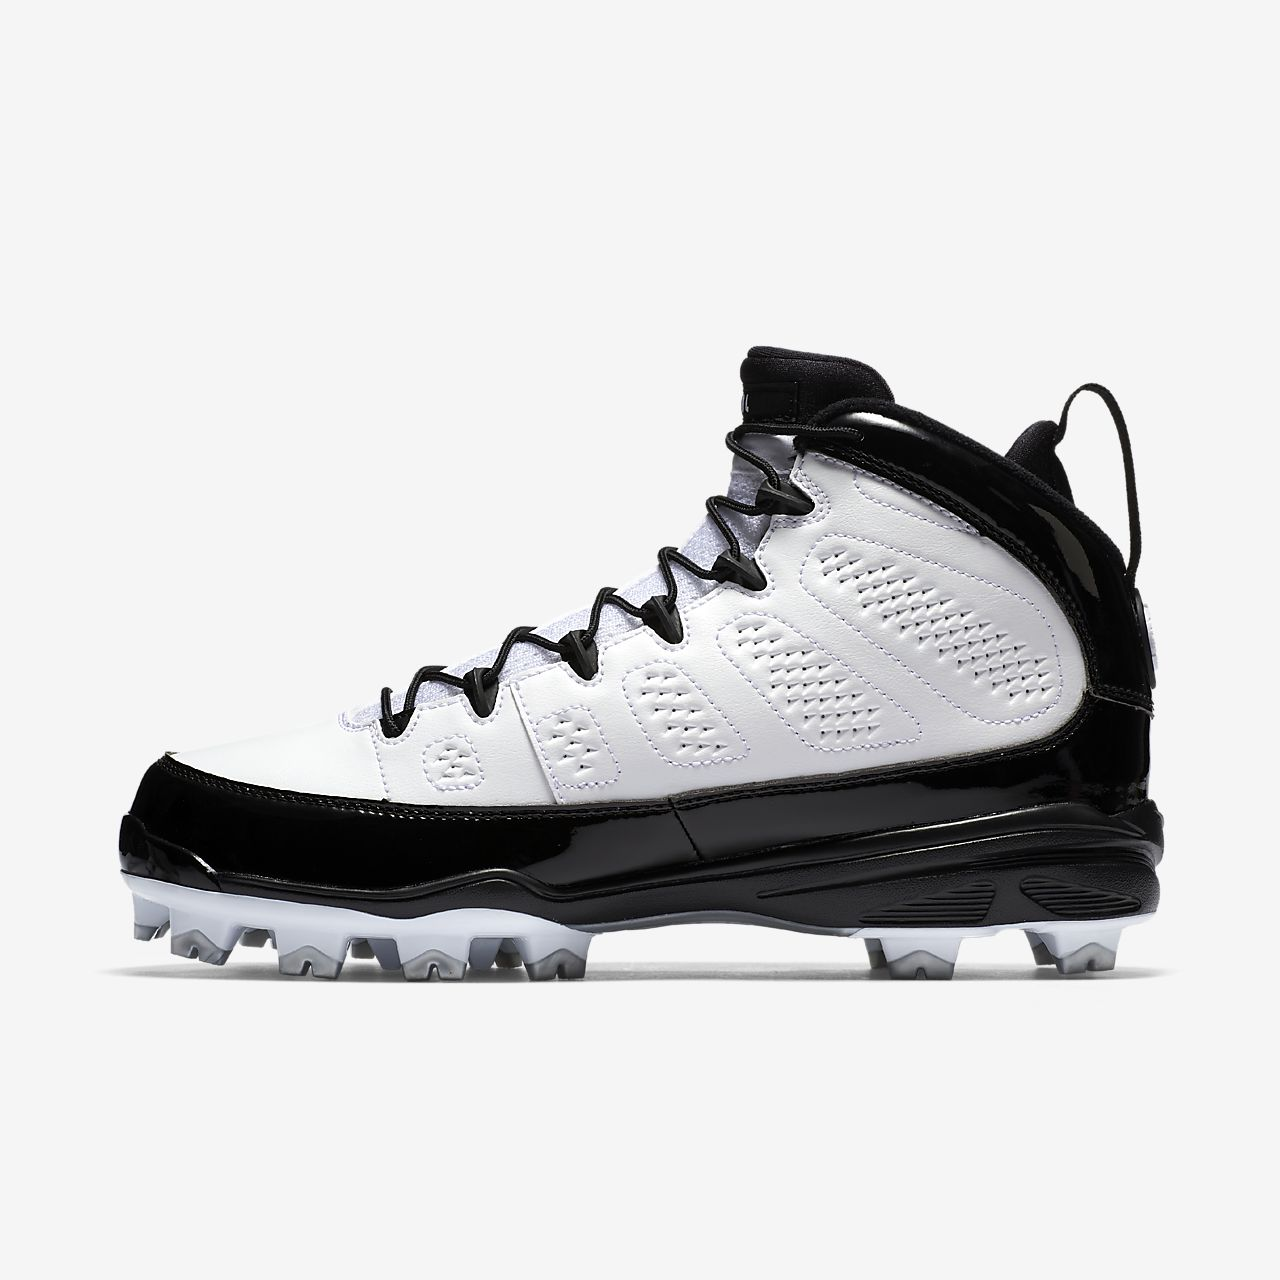 ... Jordan IX Retro MCS Men's Baseball Cleat